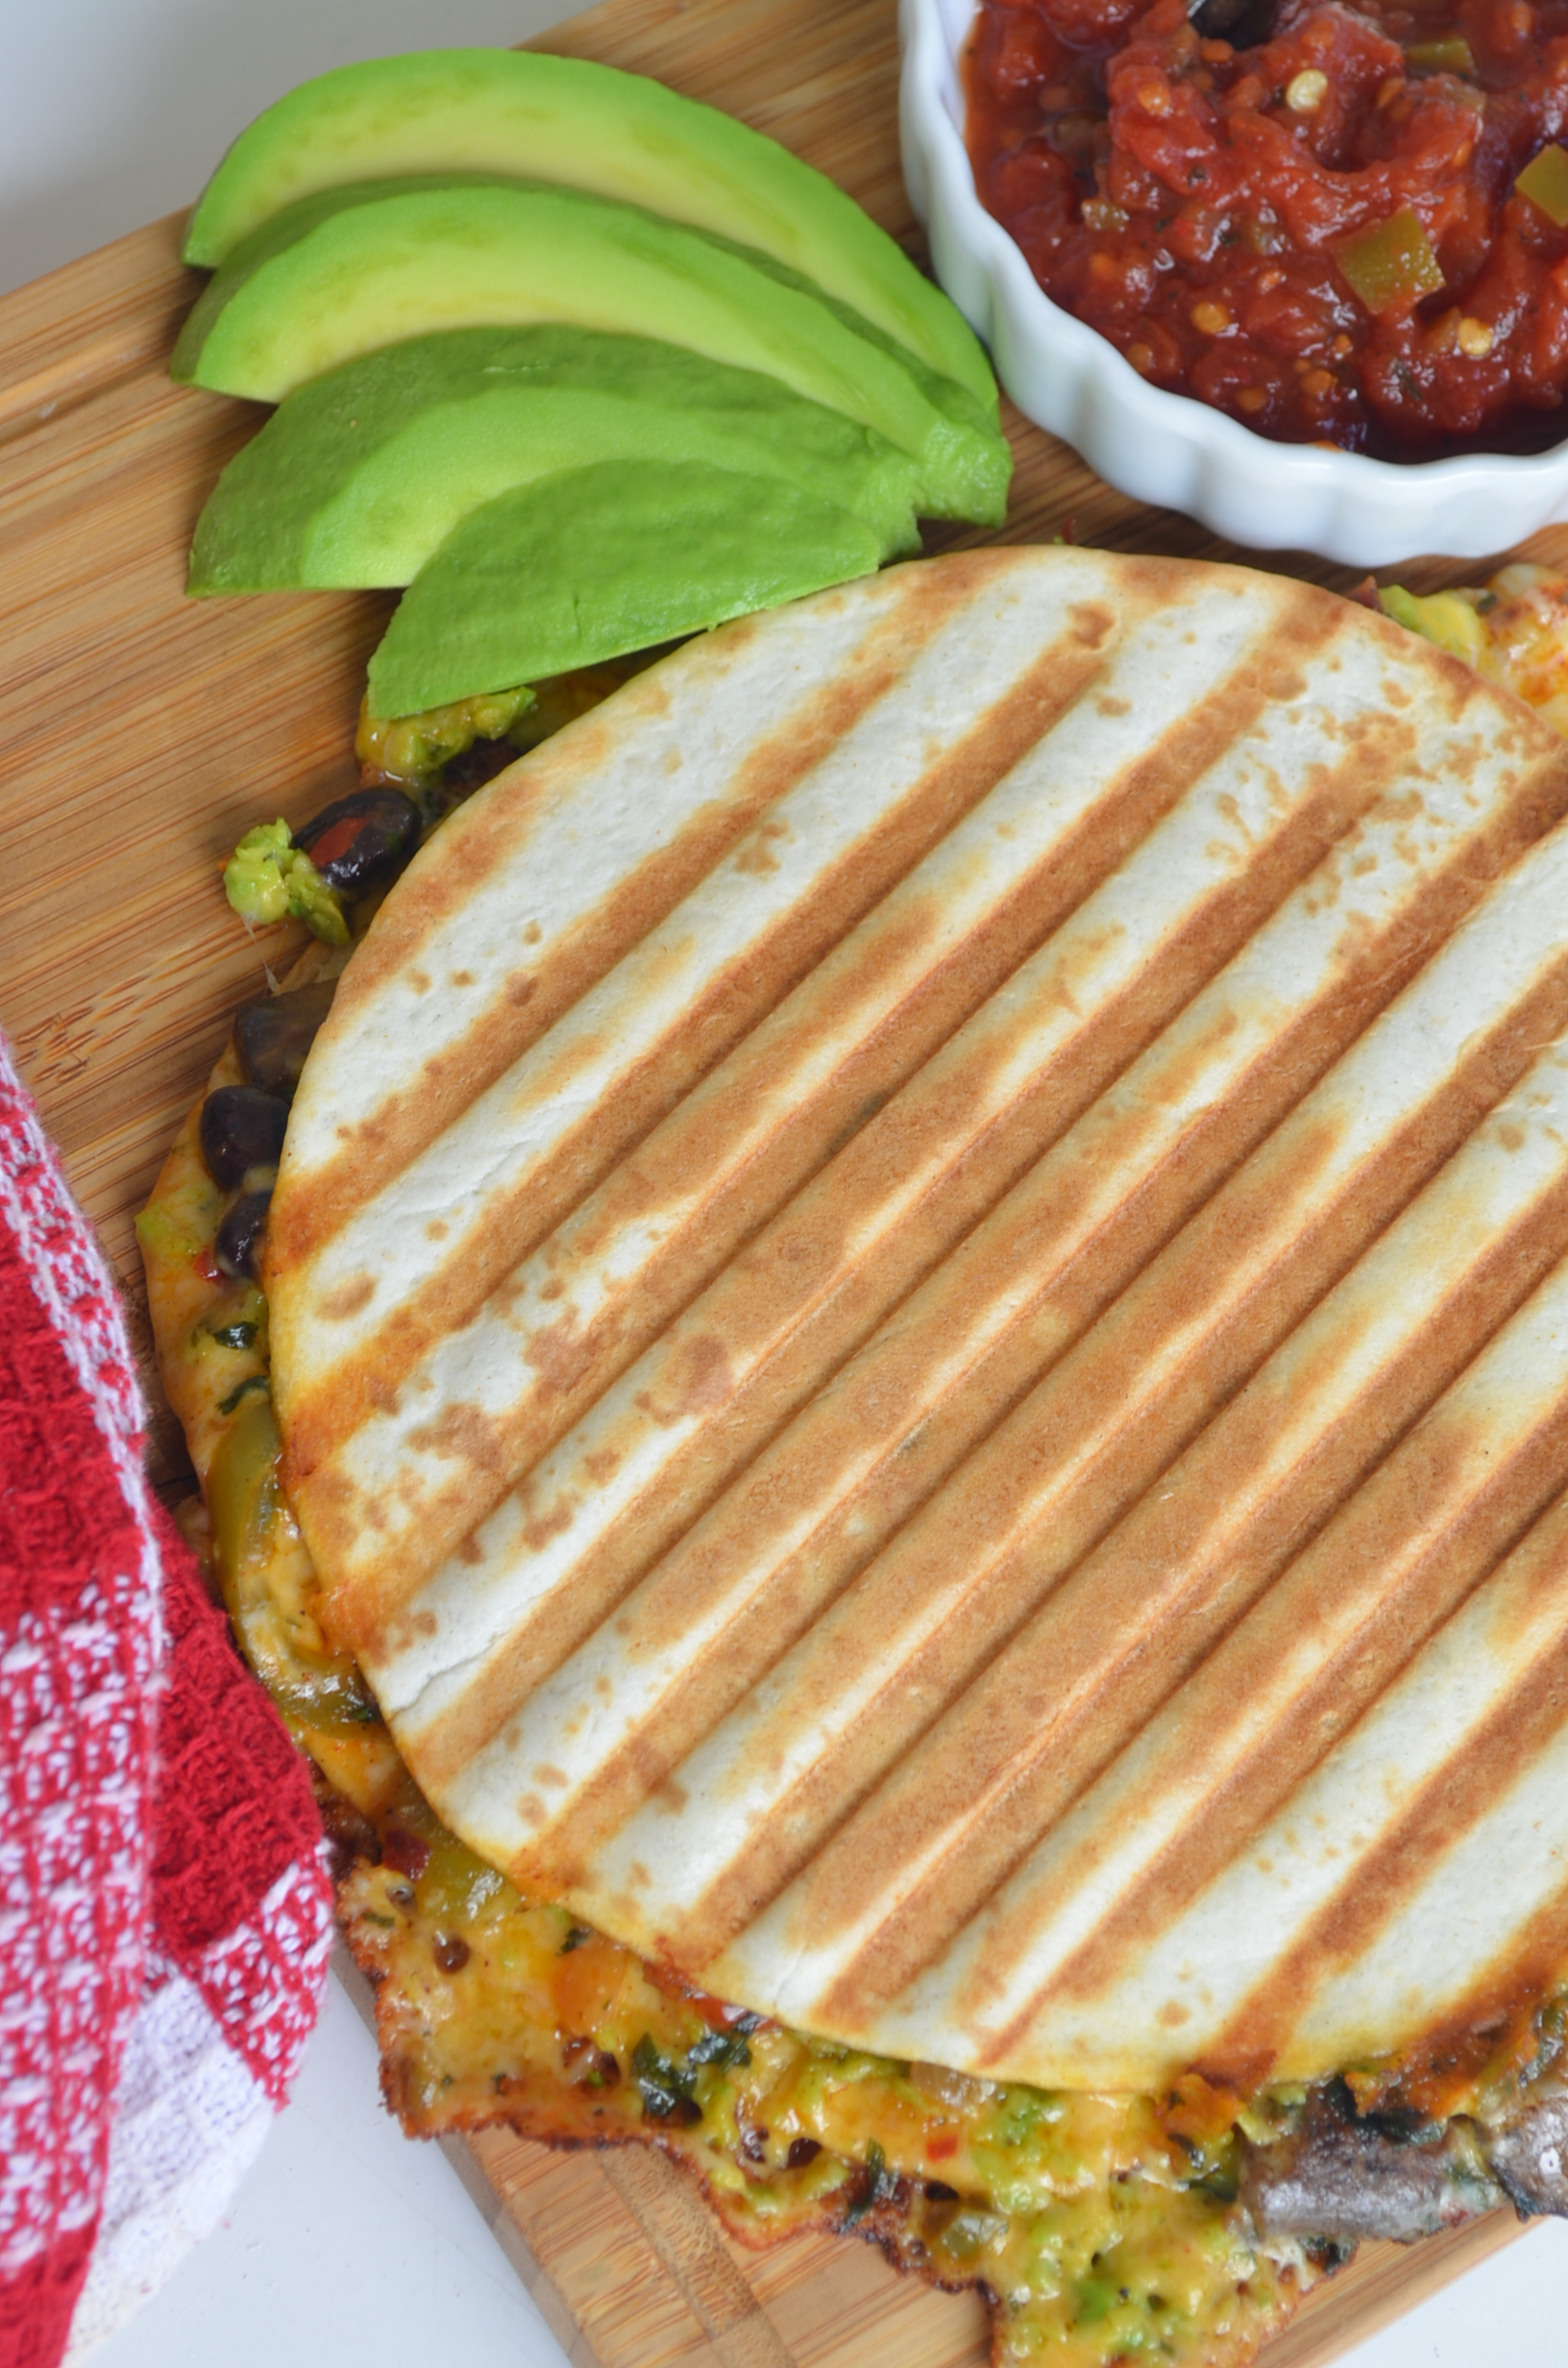 Black Bean, Avocado and Red Pepper Quesadilla